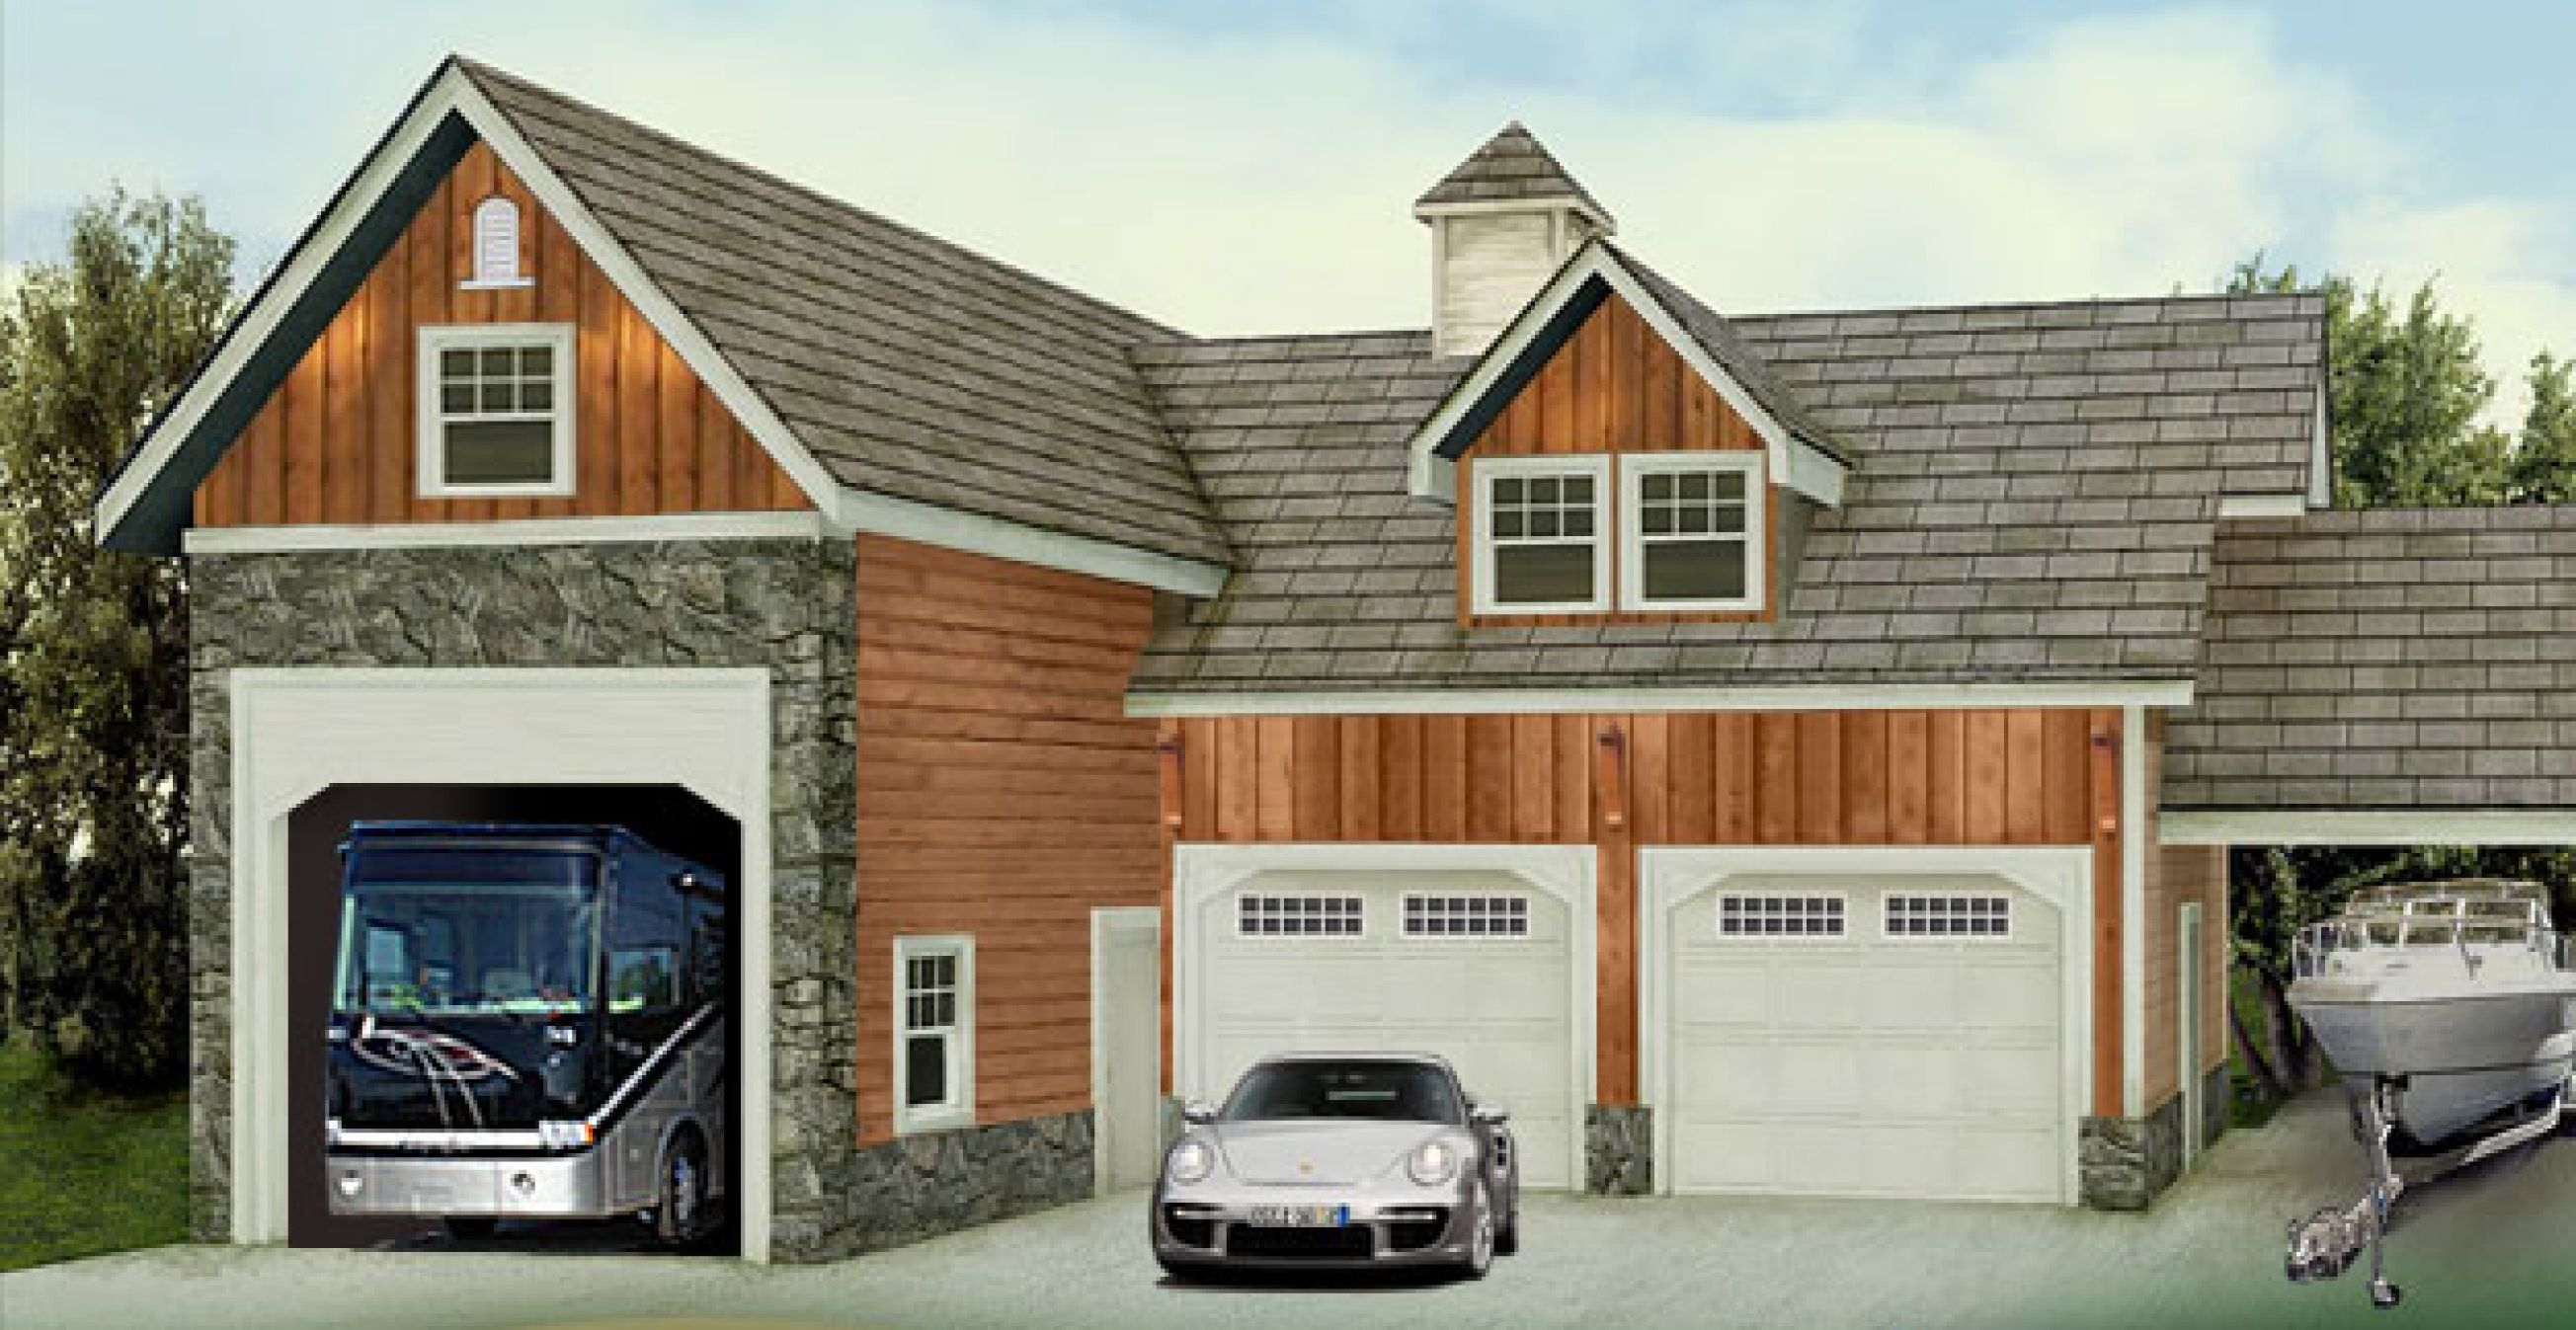 Rv Garage Plans With Living Space Of Rv Garage I 39 D Convert The Two Smaller Garages Into A